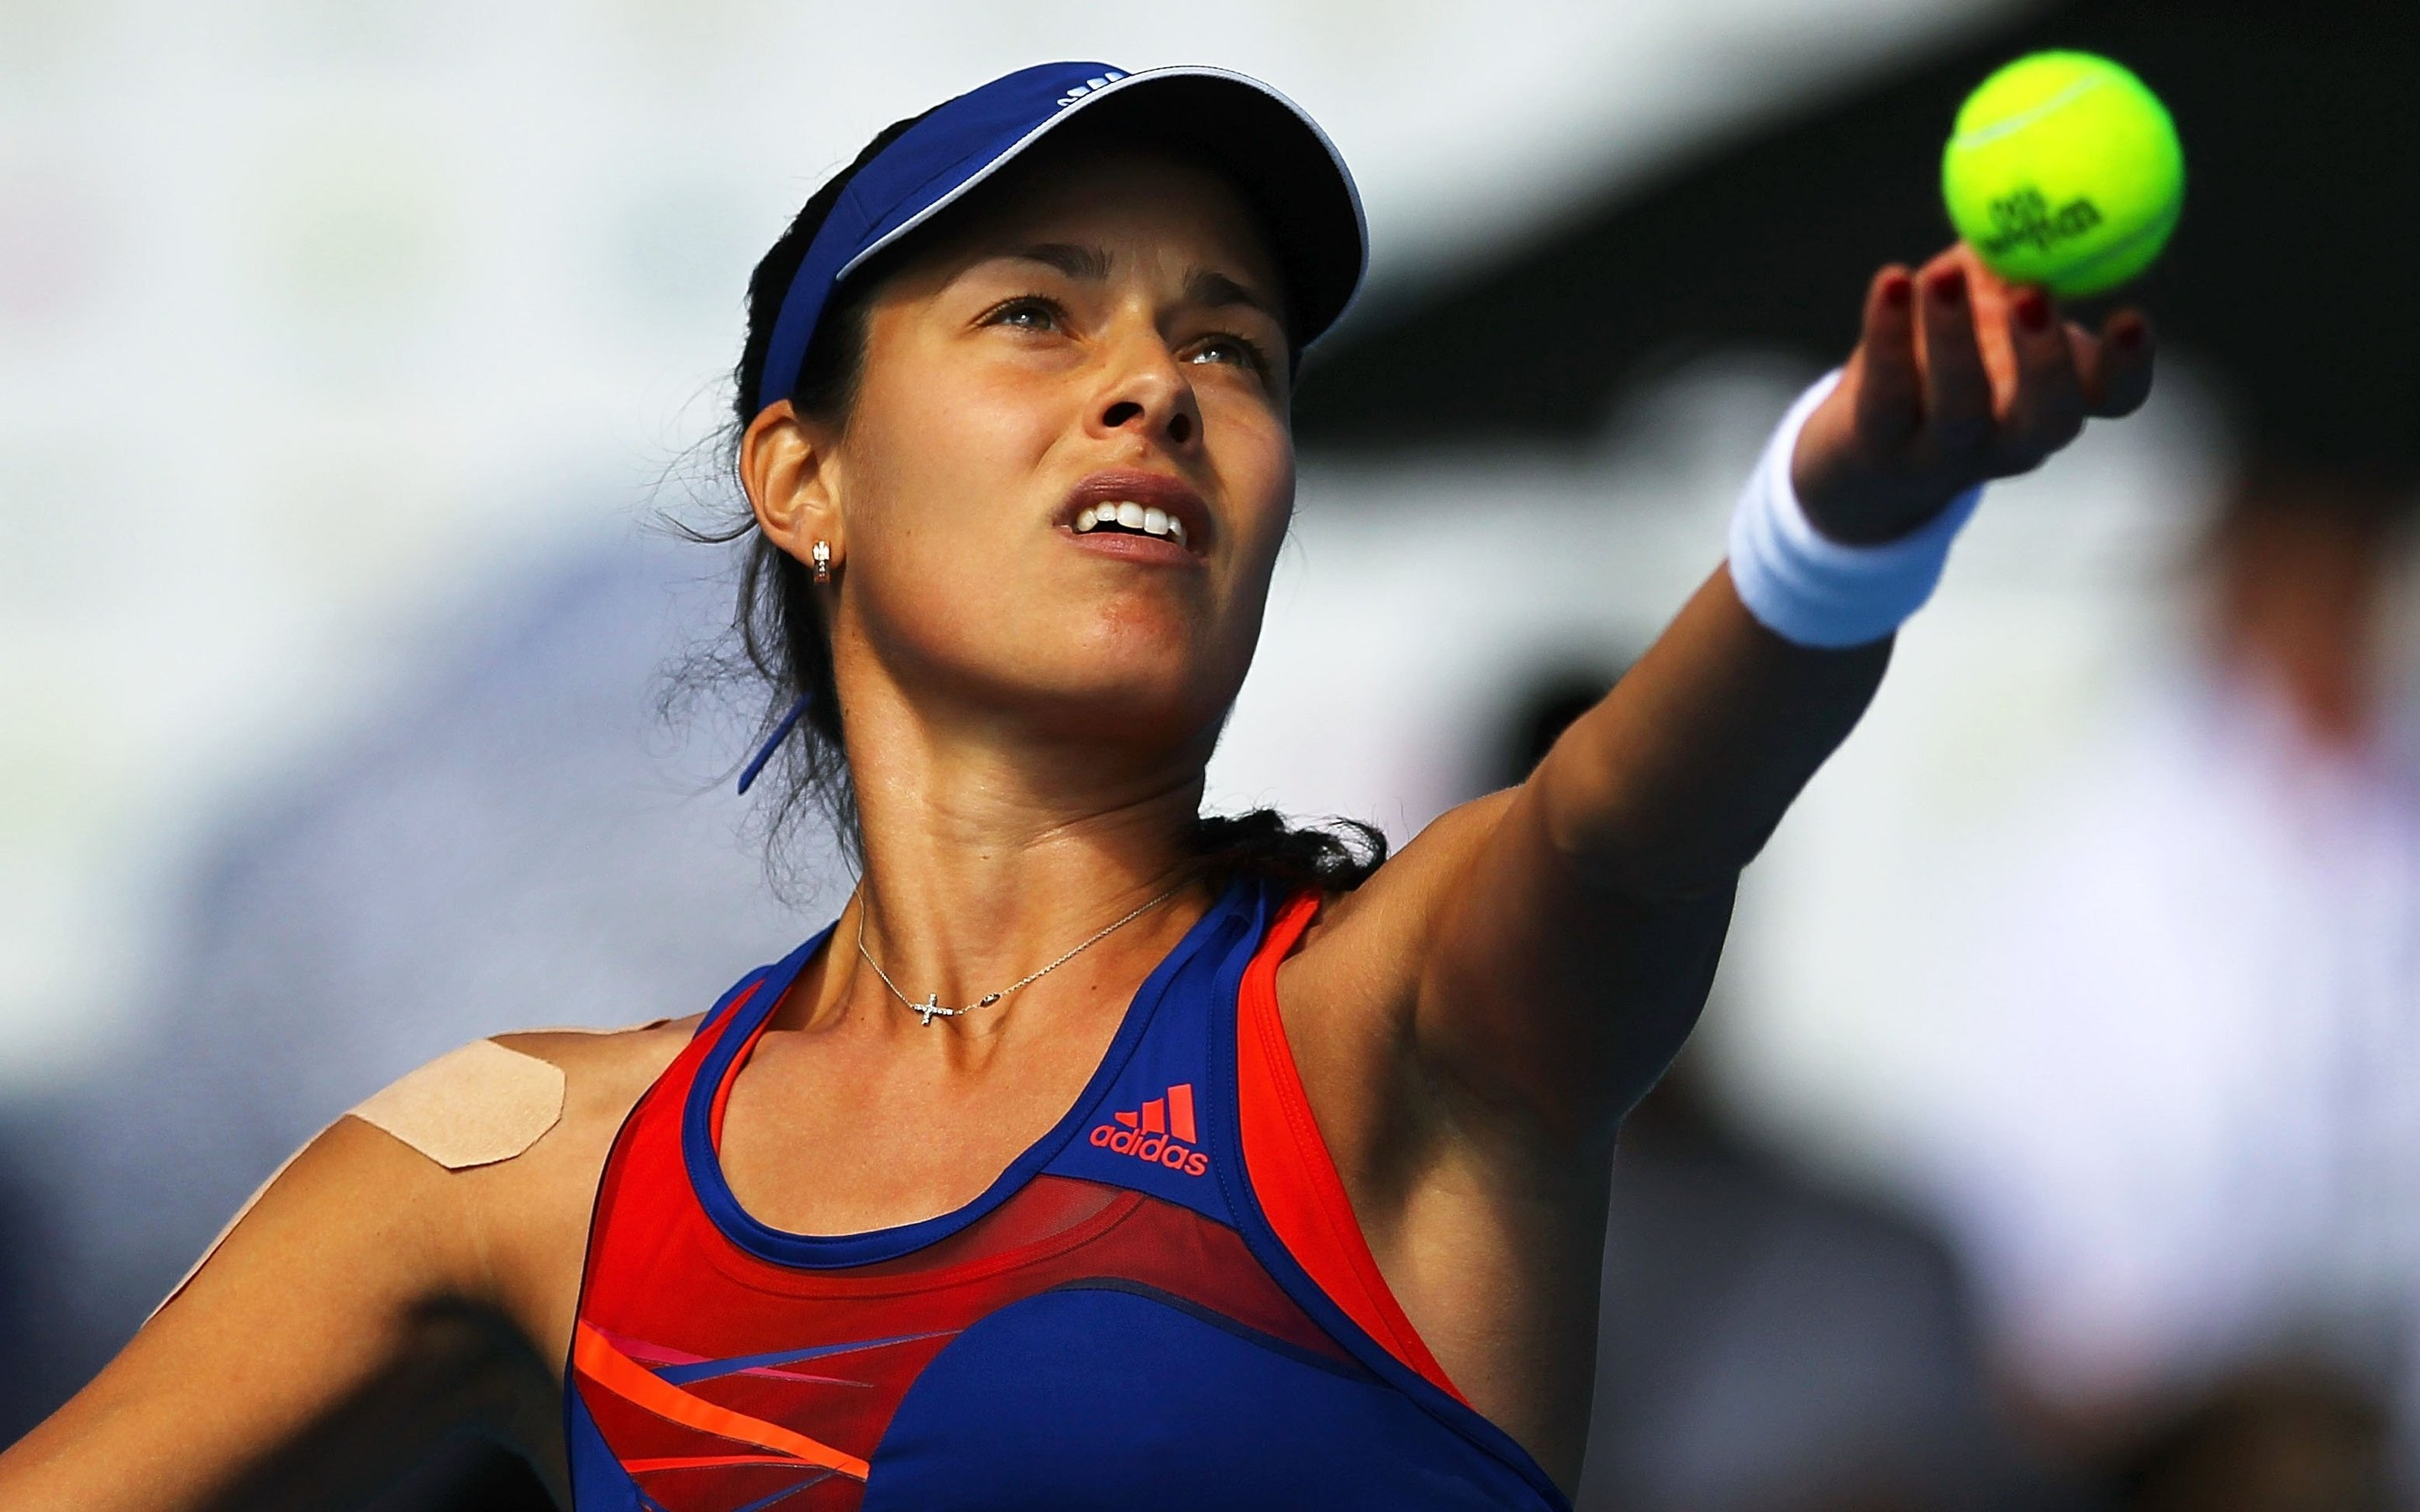 Ana Ivanovic Archives - HDWallSource.com - HDWallSource.com